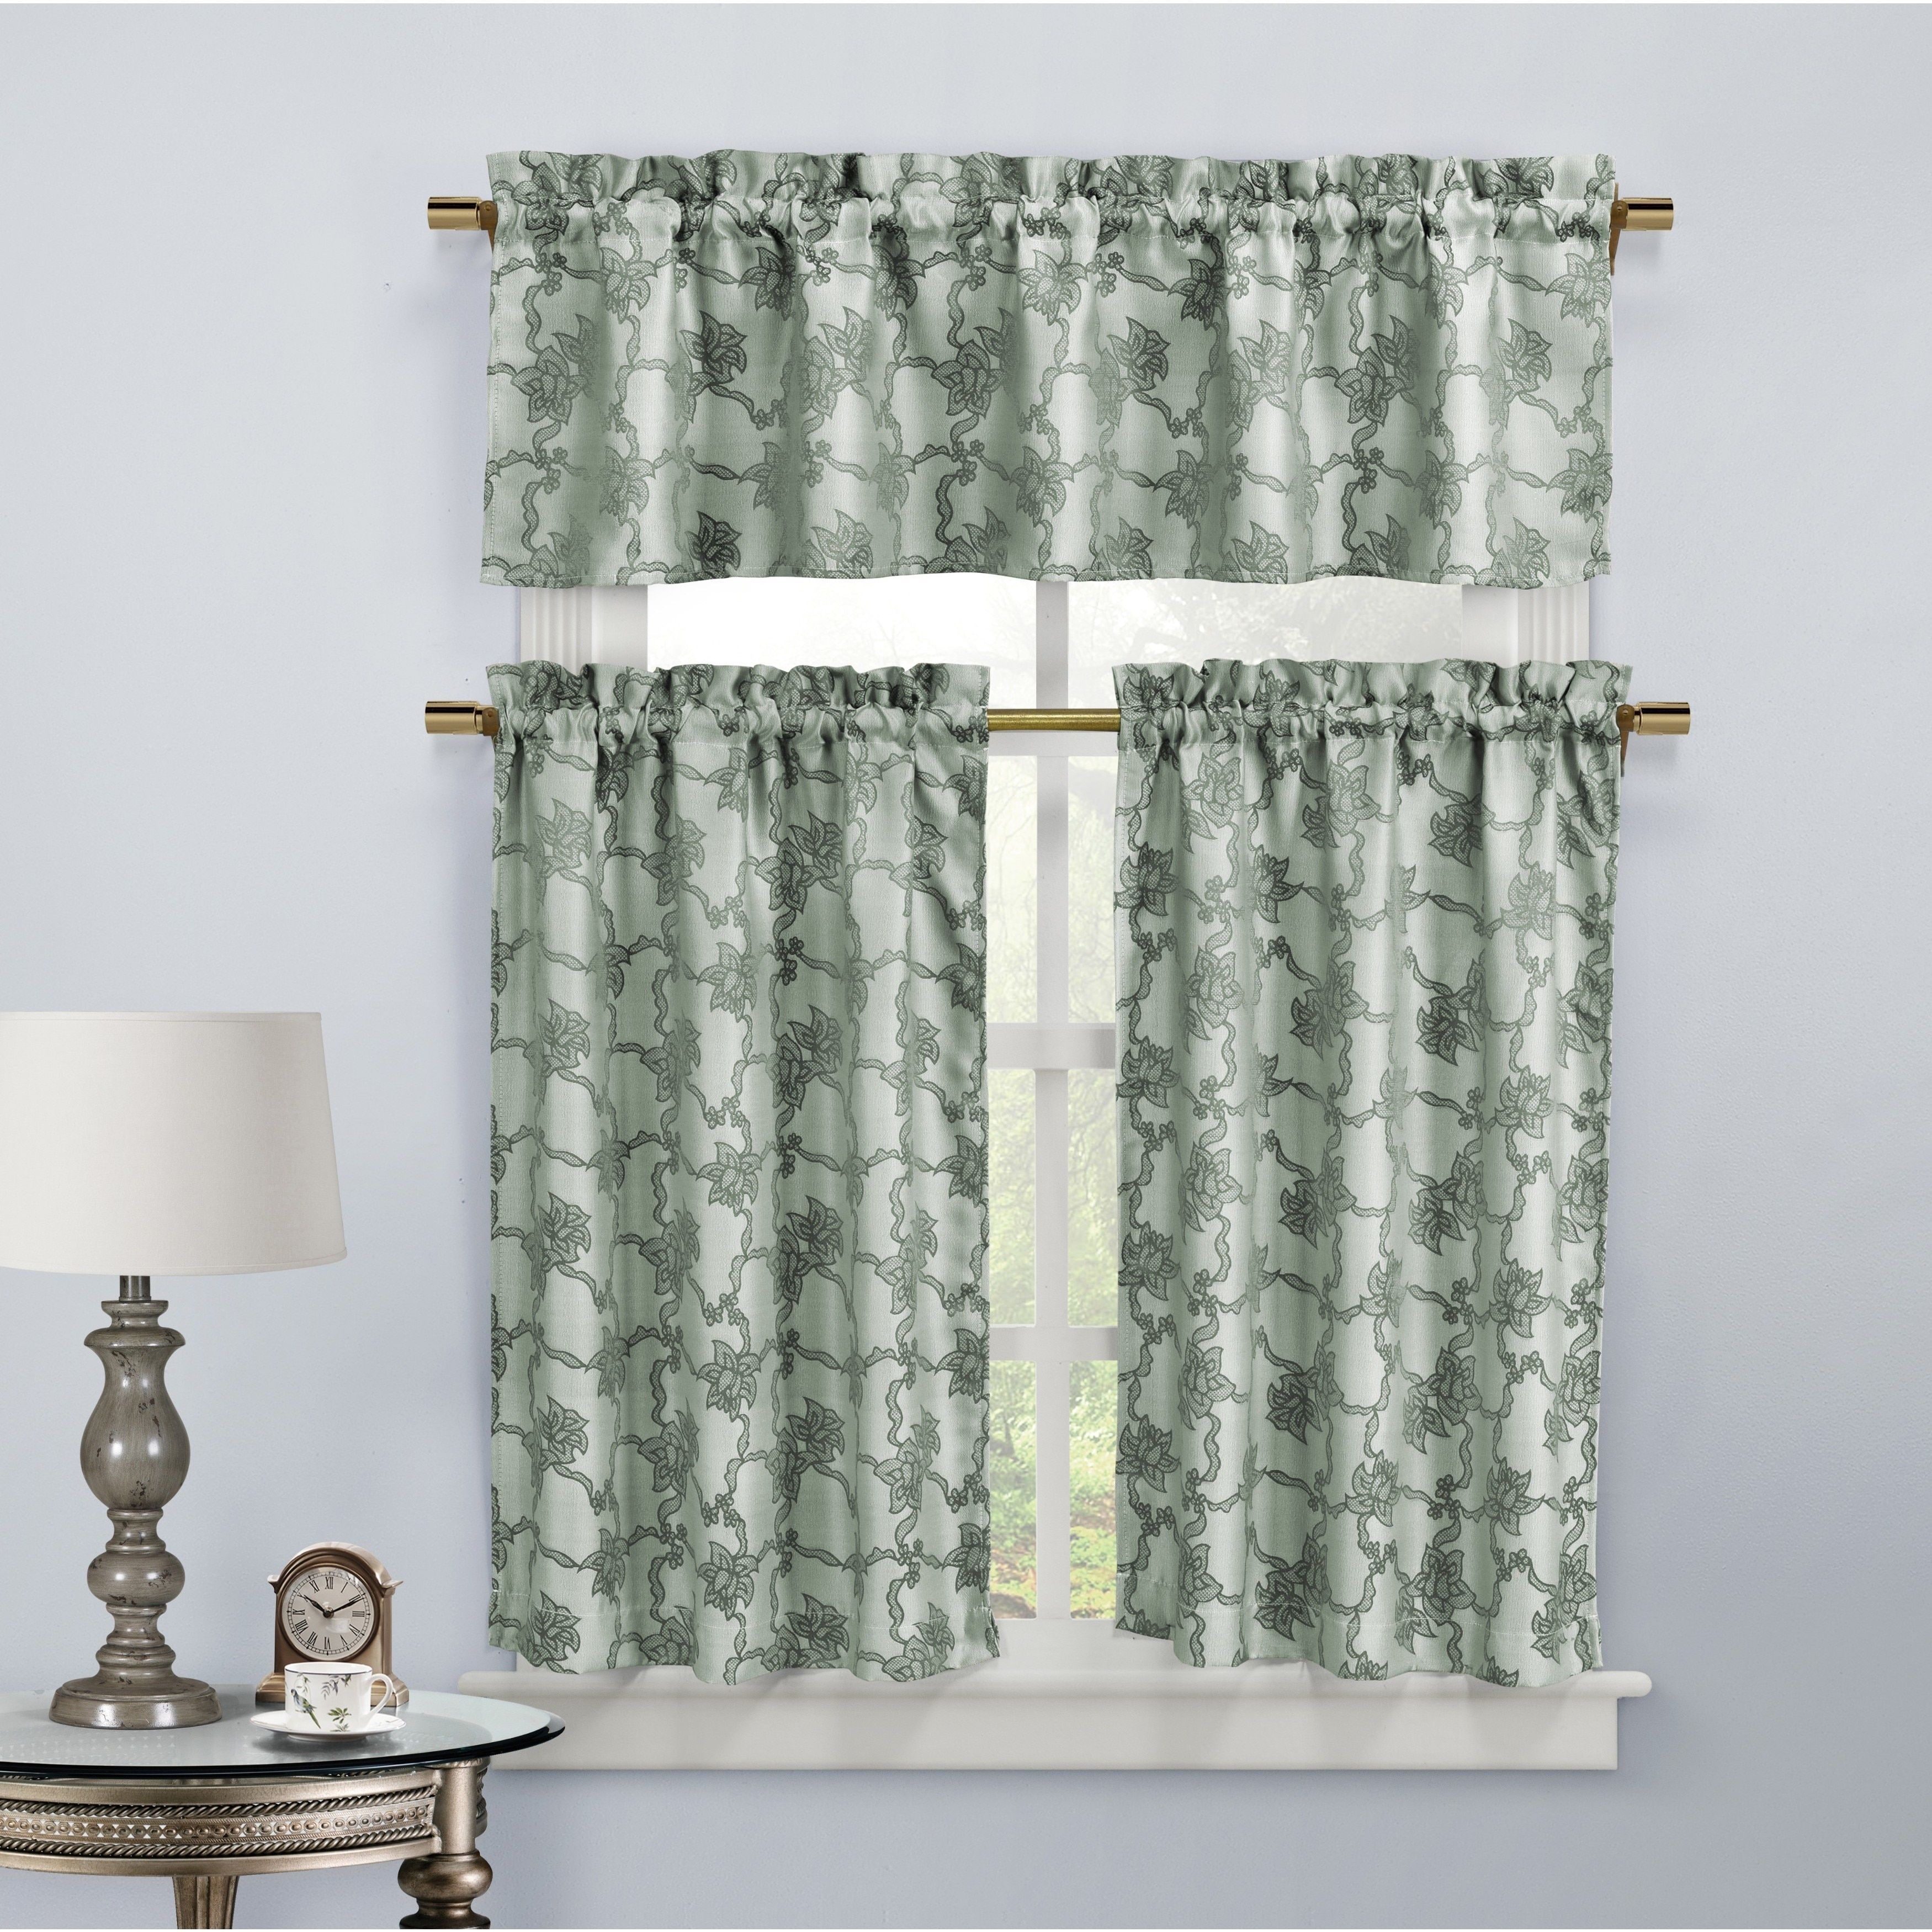 Duck river gala r p floral kitchen curtain taupe brown kitchen